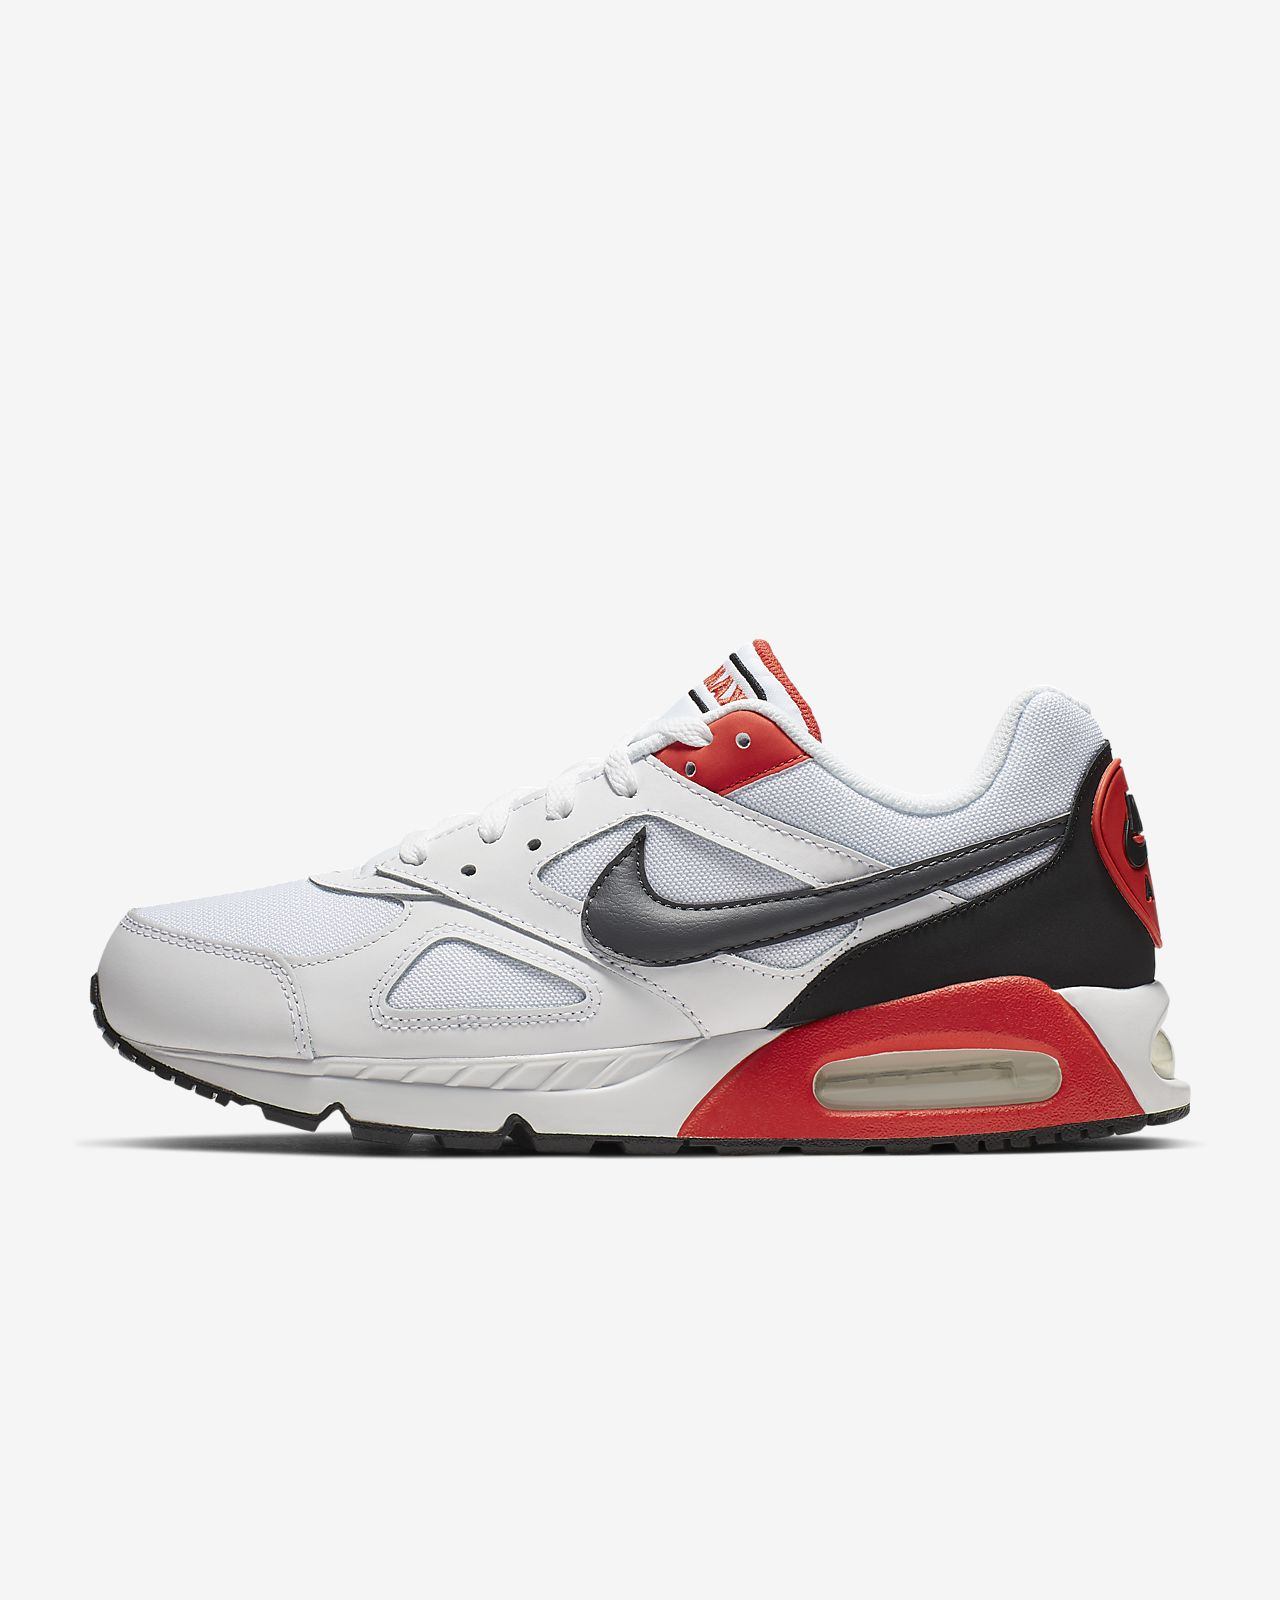 MEN'S SHOES NIKE AIR MAX IVO LEATHER